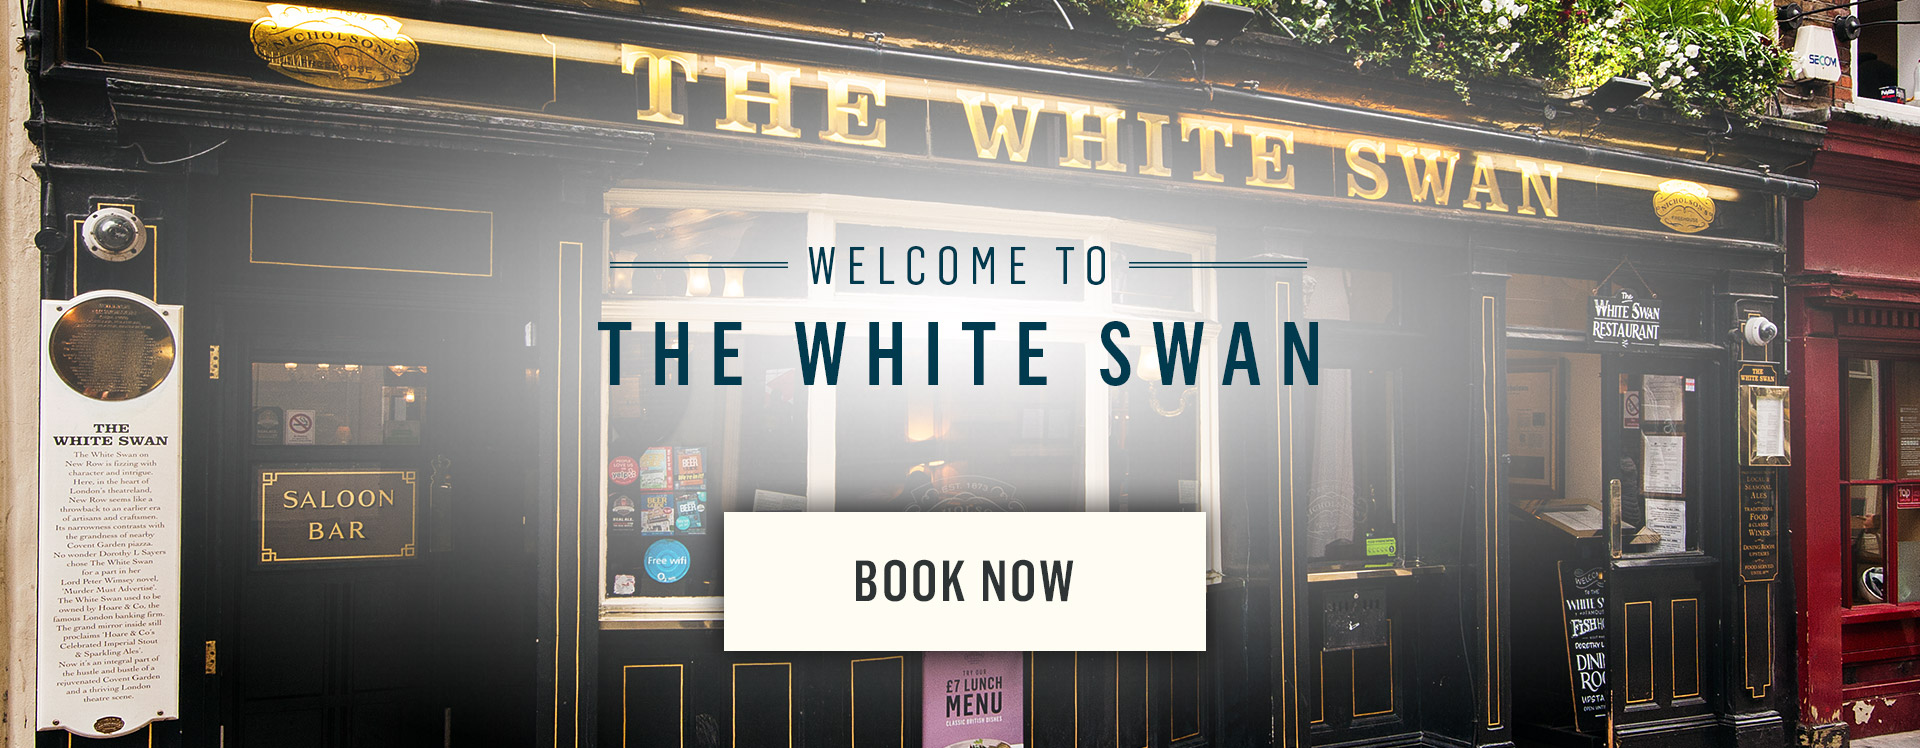 Welcome to The White Swan - Book Now